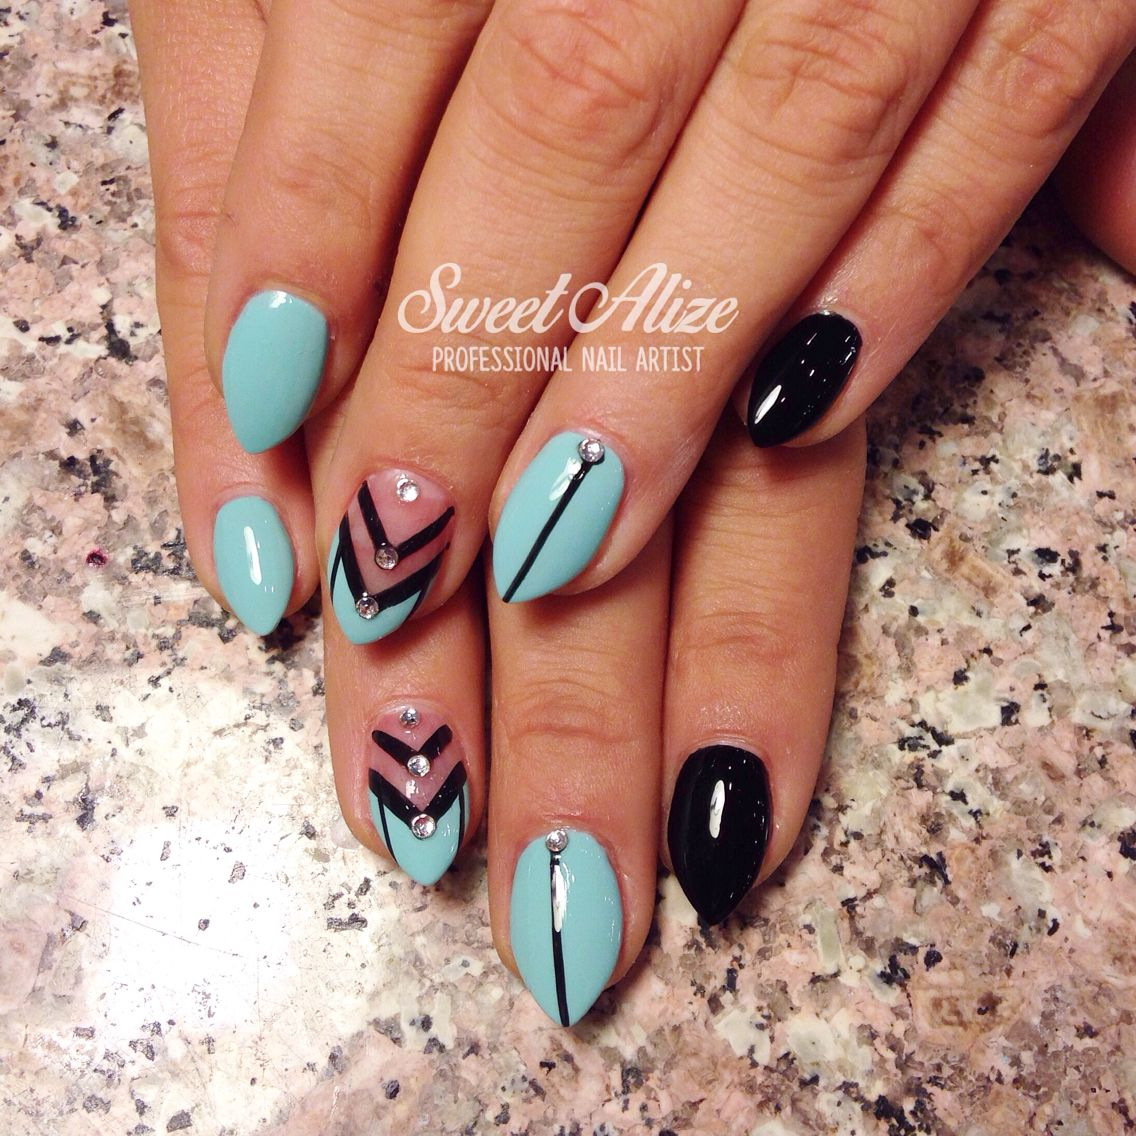 Nails Nailart Naildesign Naildesigns Beauty Fashion